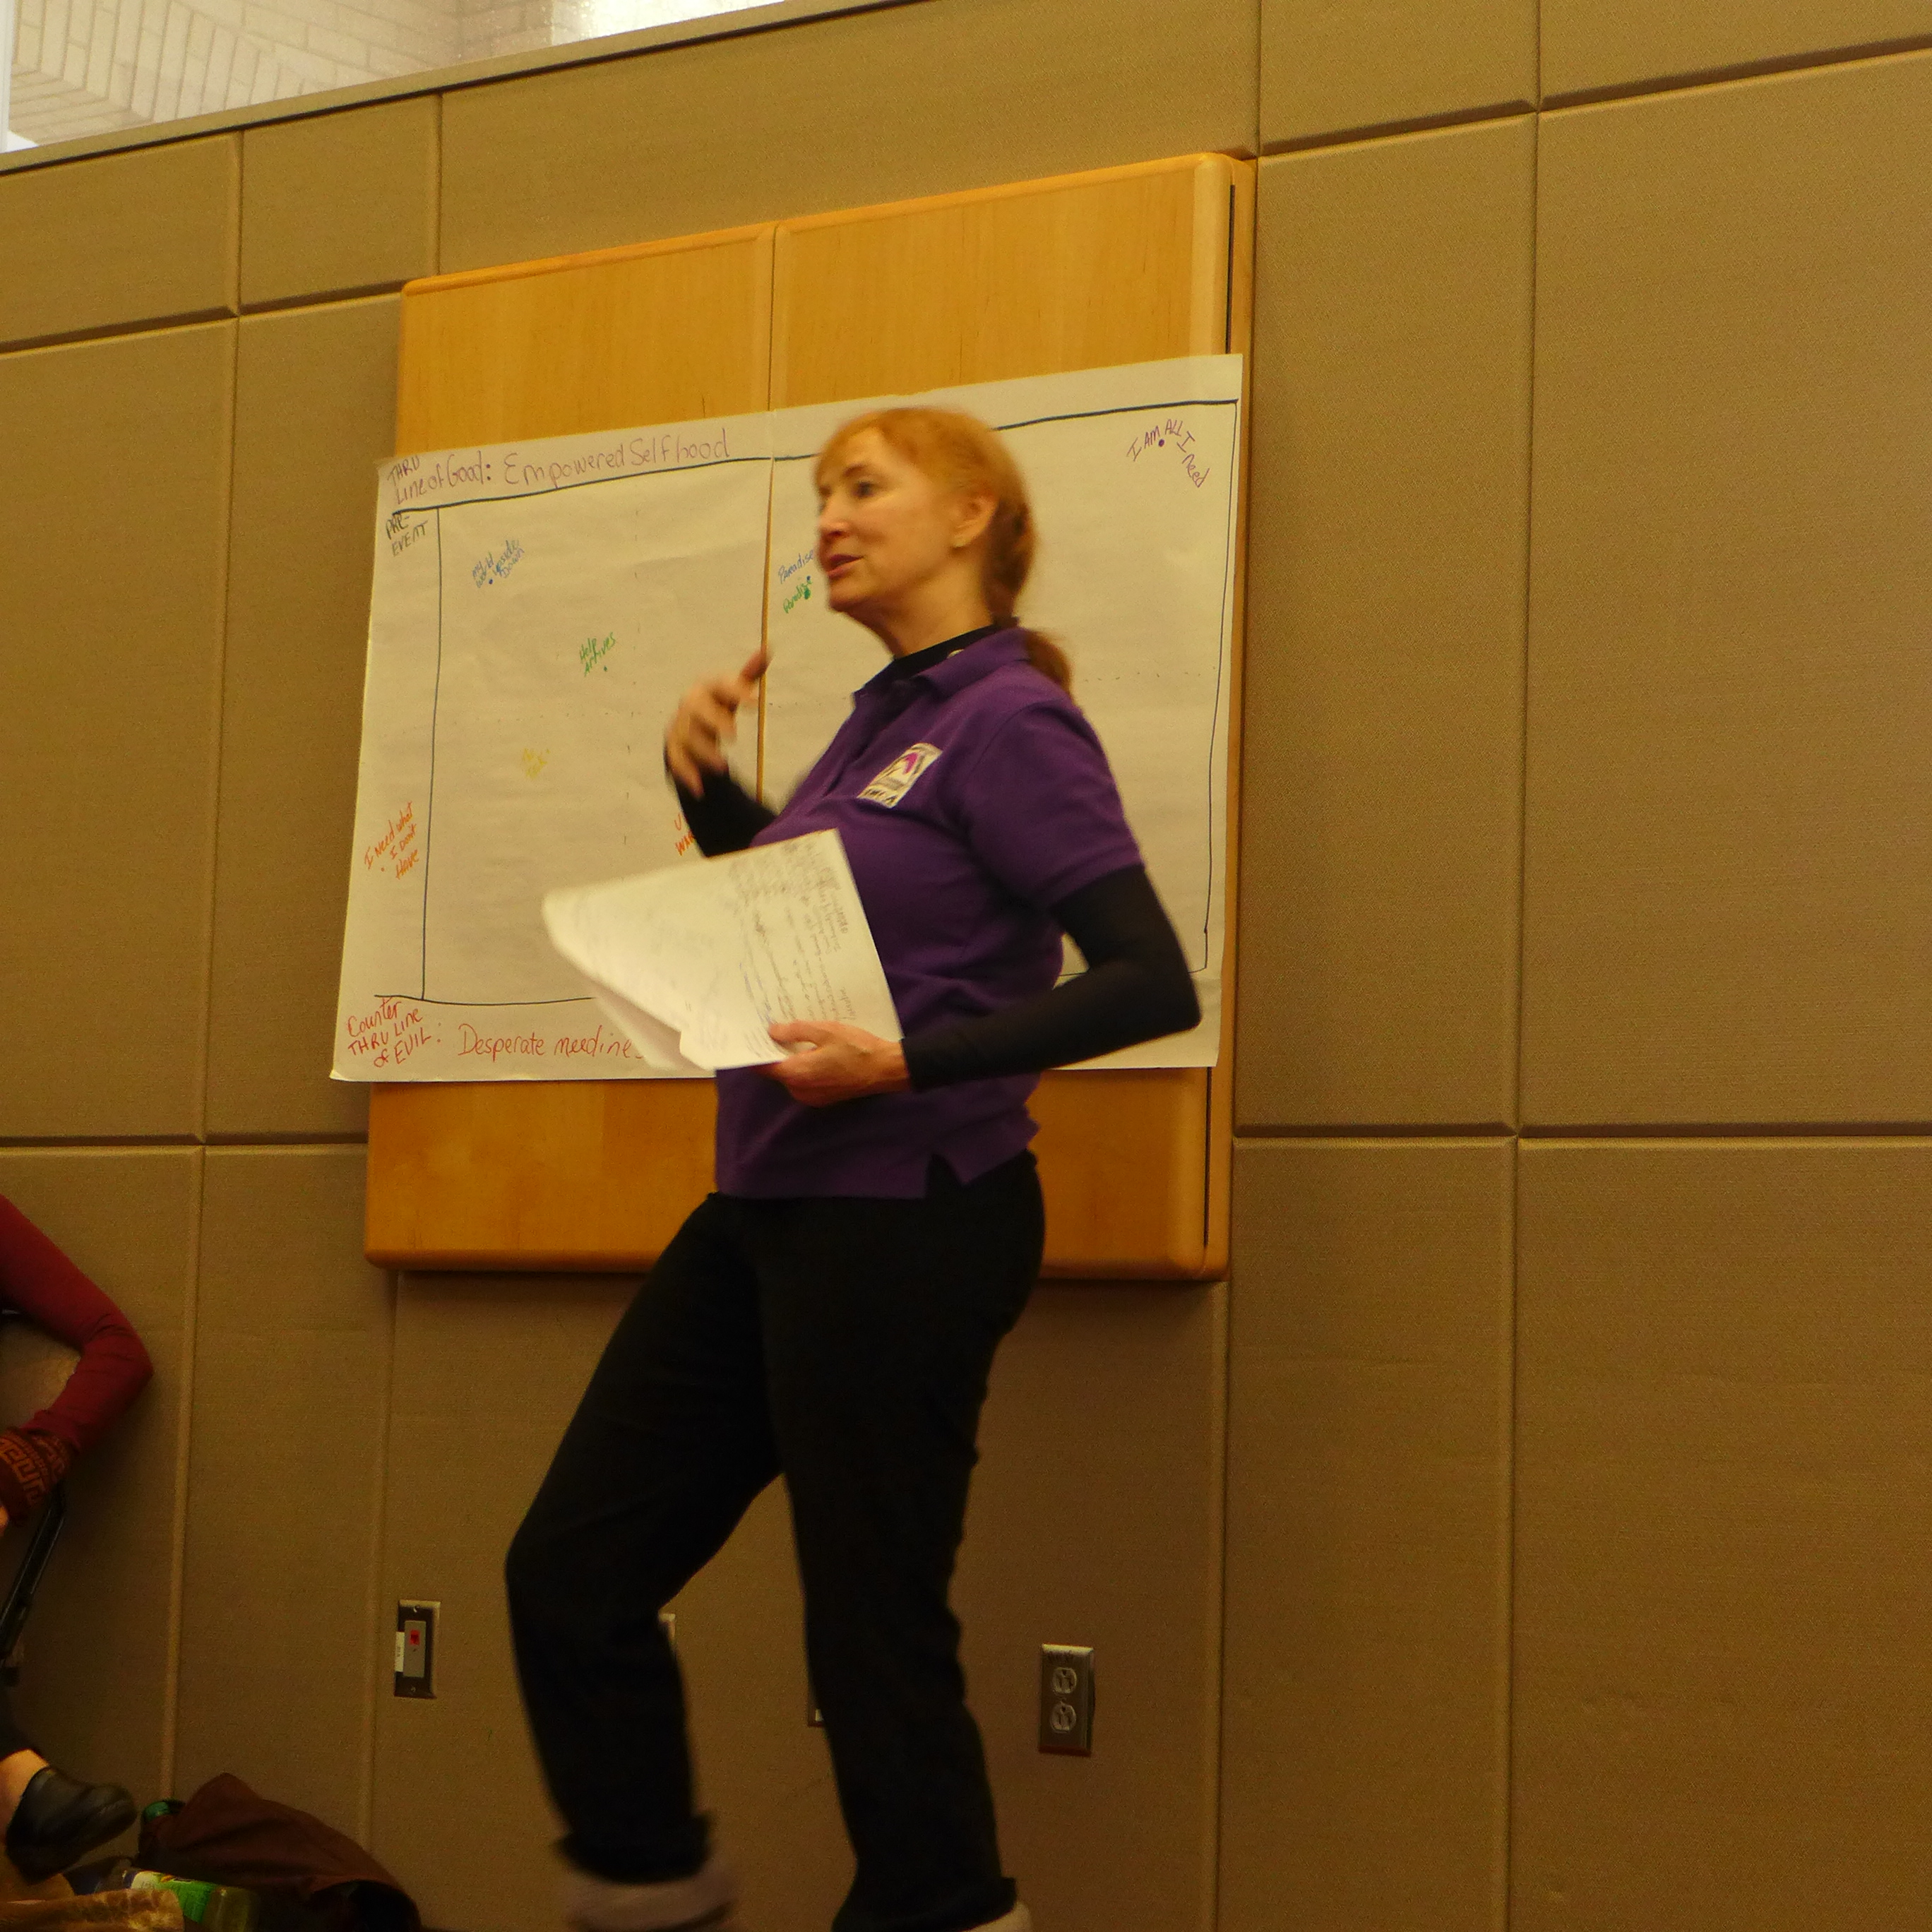 Michael Chekhov Master Teacher Lisa Dalton explains SynthAnalysis at SETC